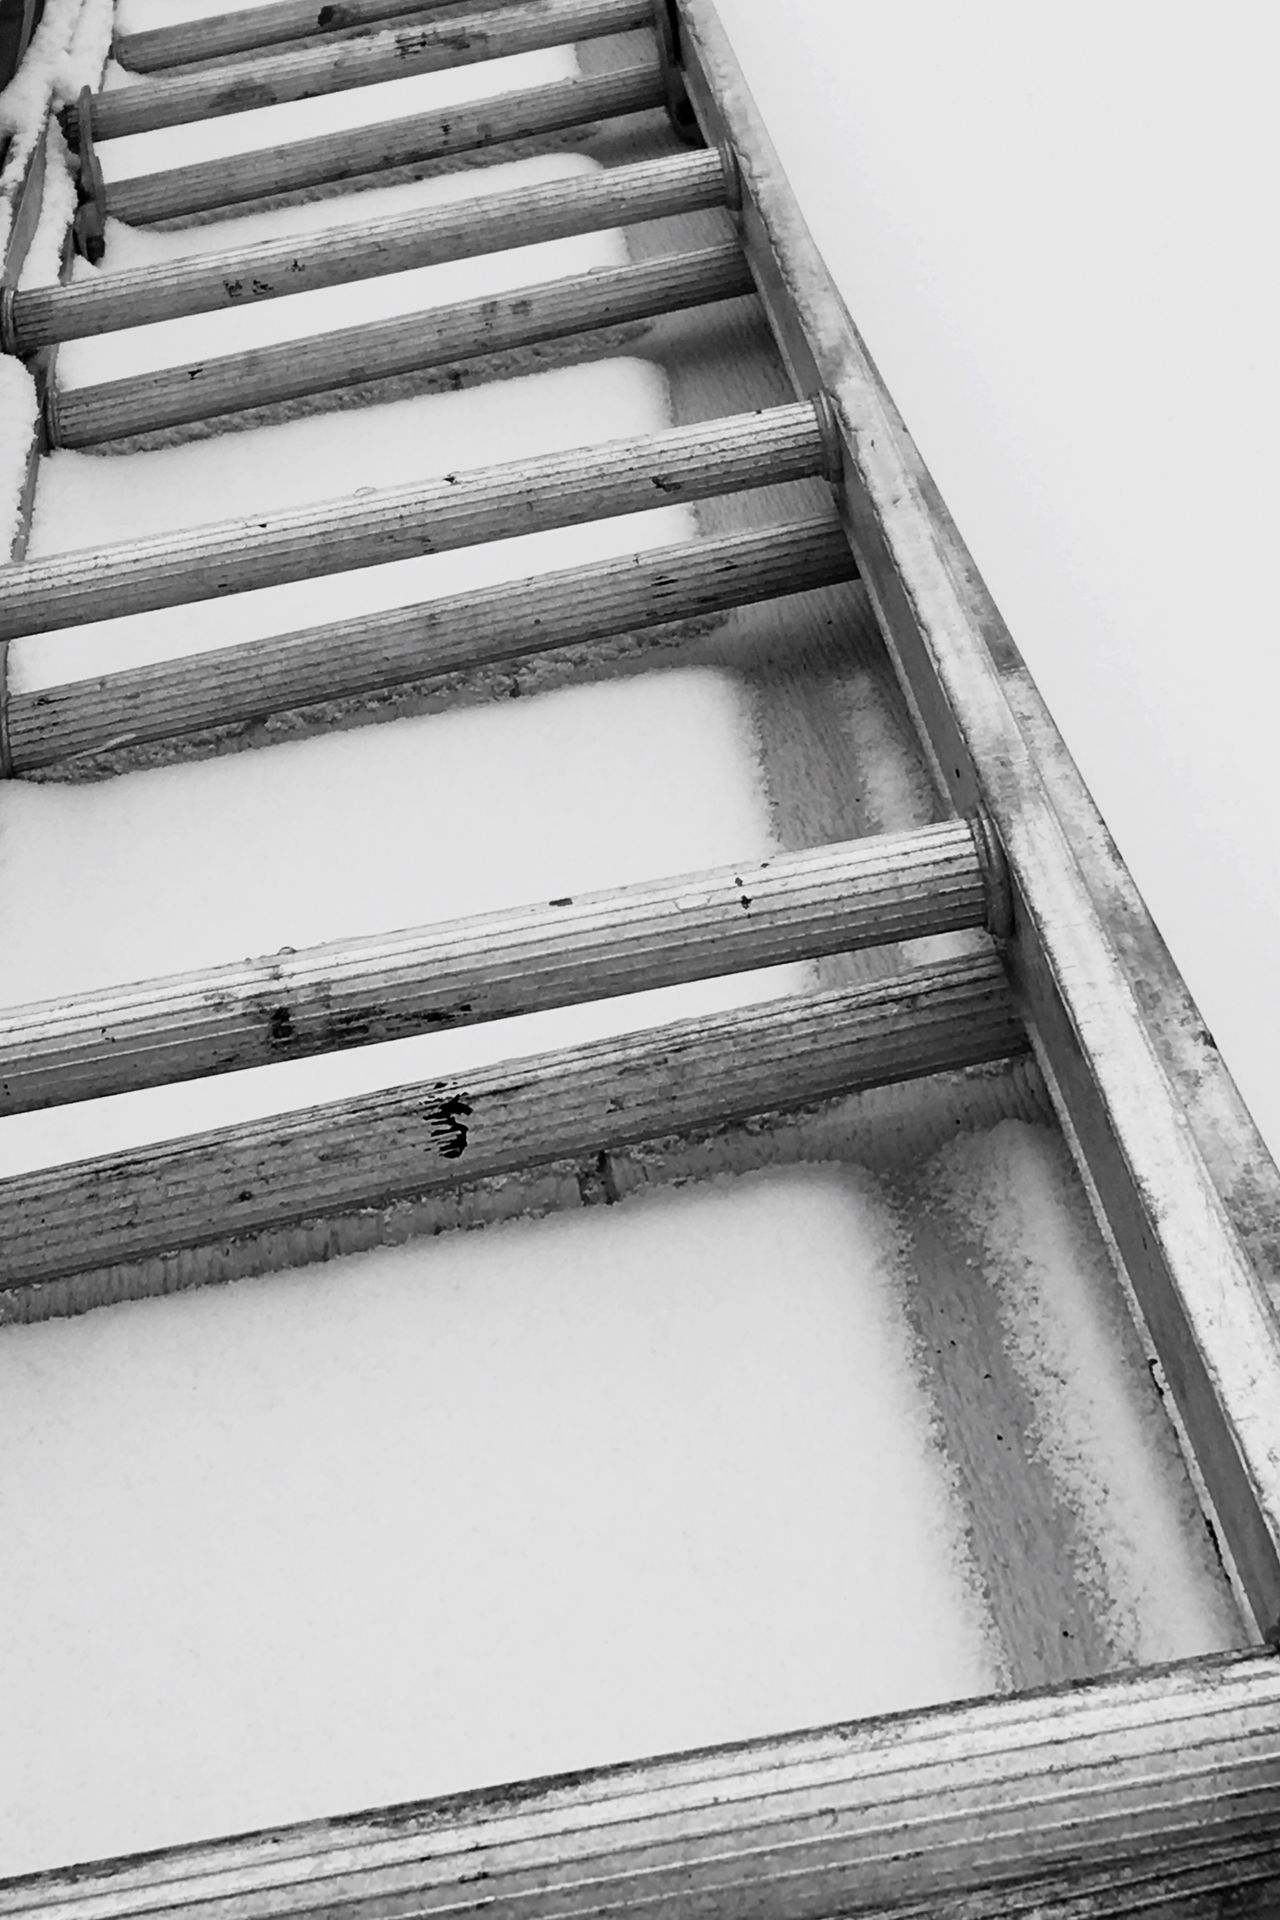 No People Architecture Close-up White Snow Covered NaileditBYKat Black And White Ladder